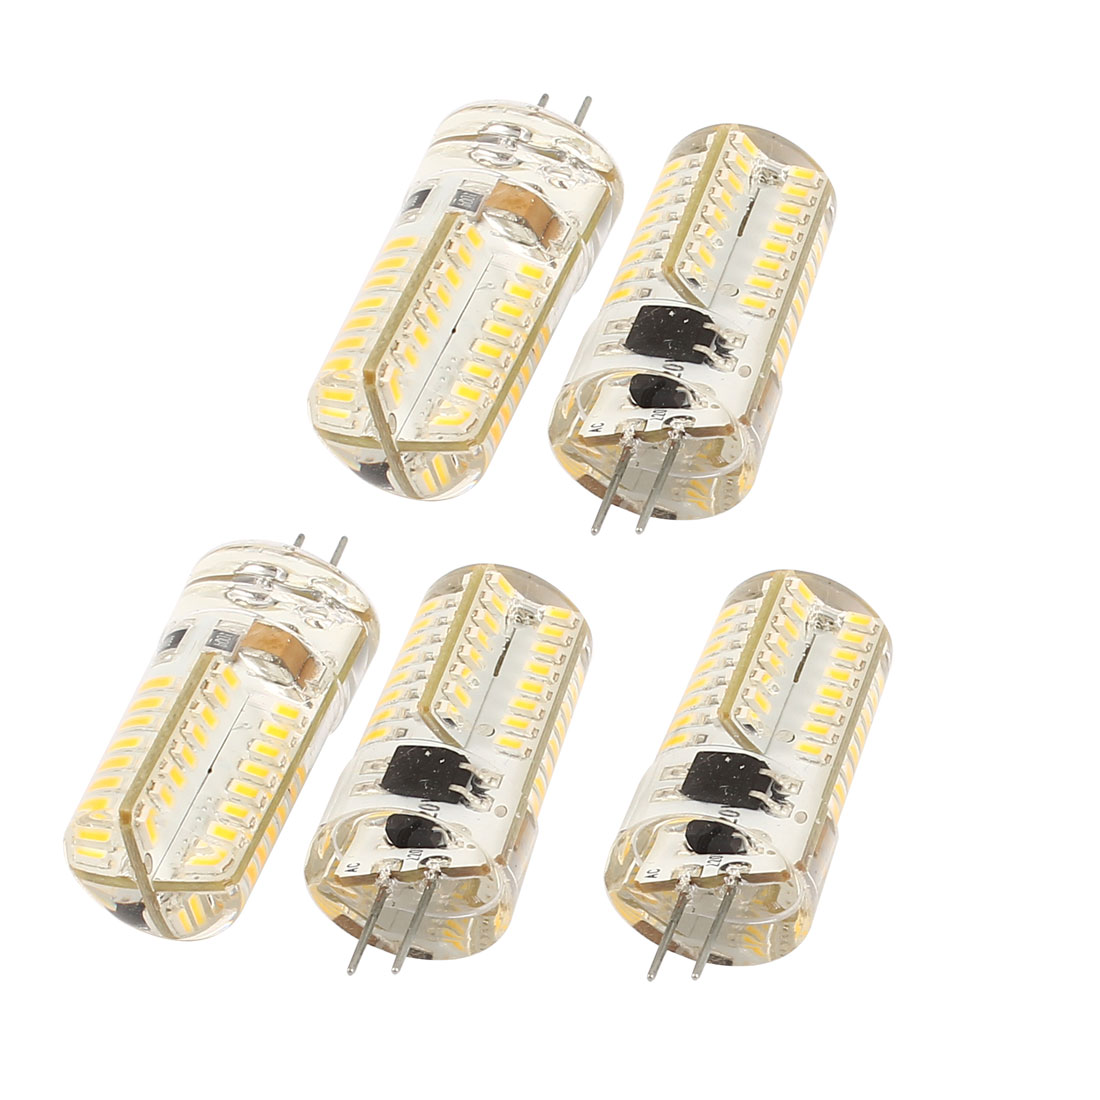 5 Pcs Energy Saving G4 Base 3014 SMD 3W 64 LED Bulb Lamp Light Warm White